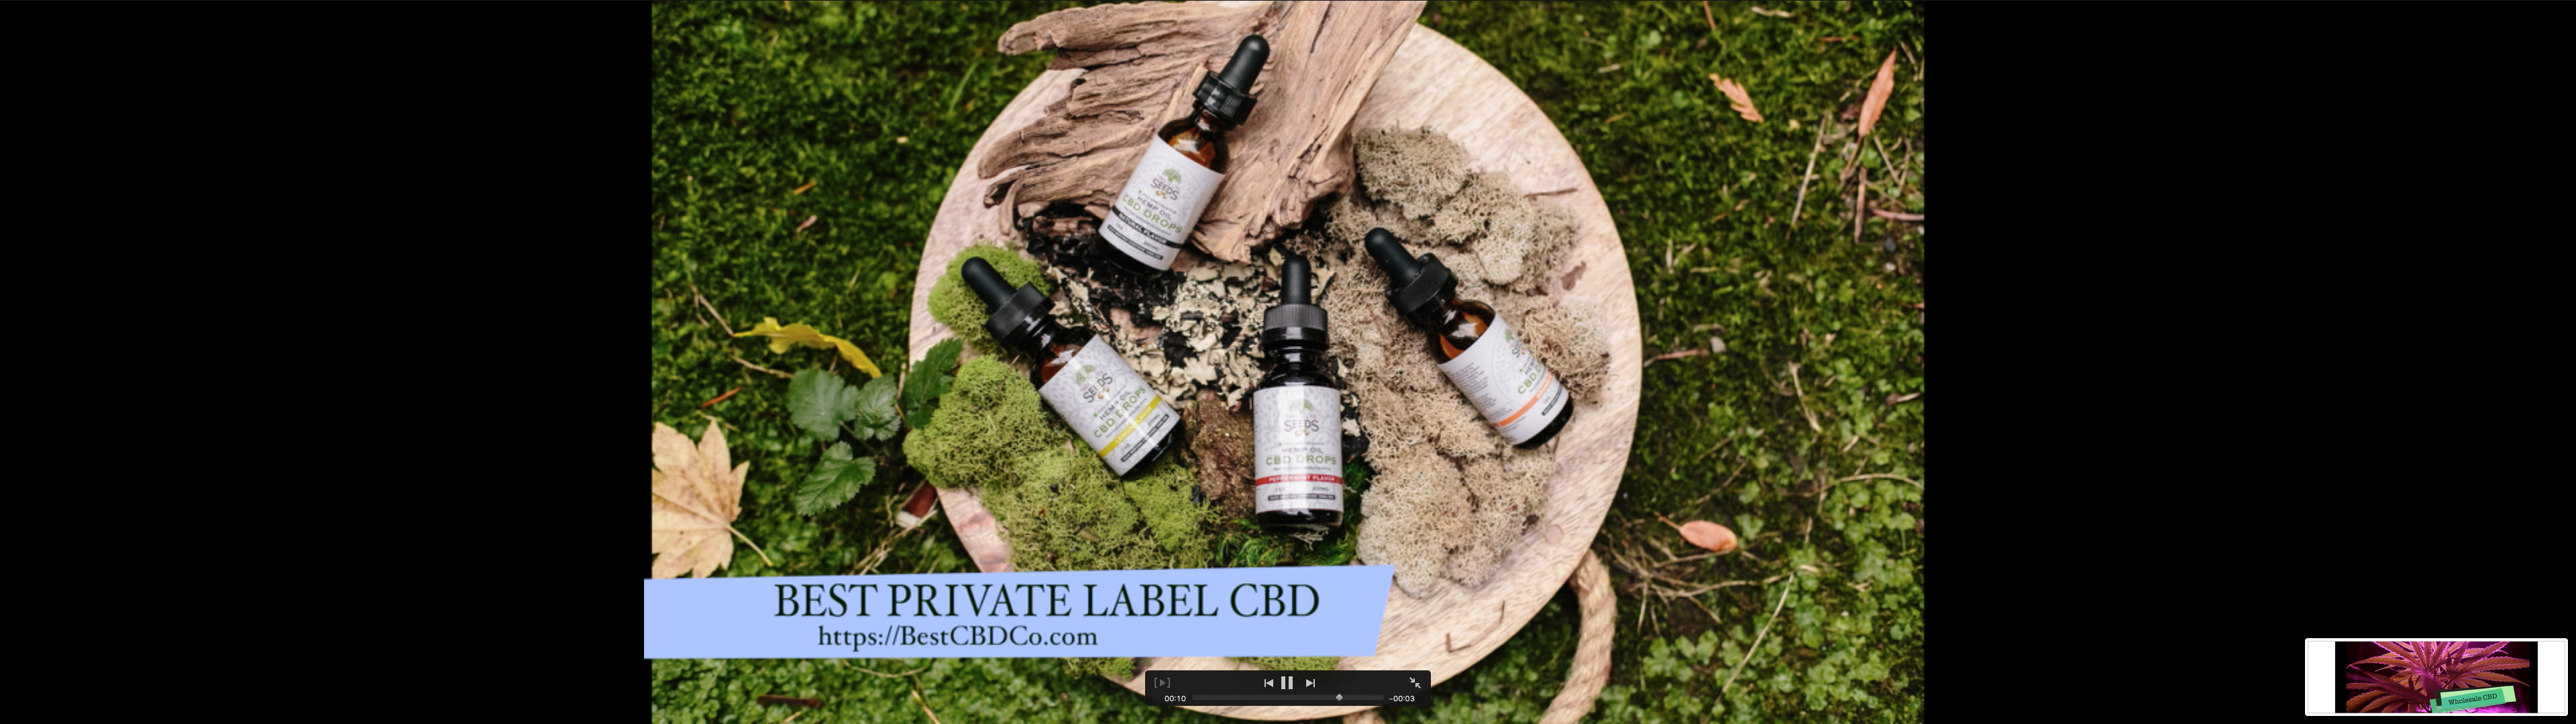 CBD Wholesale Private Label